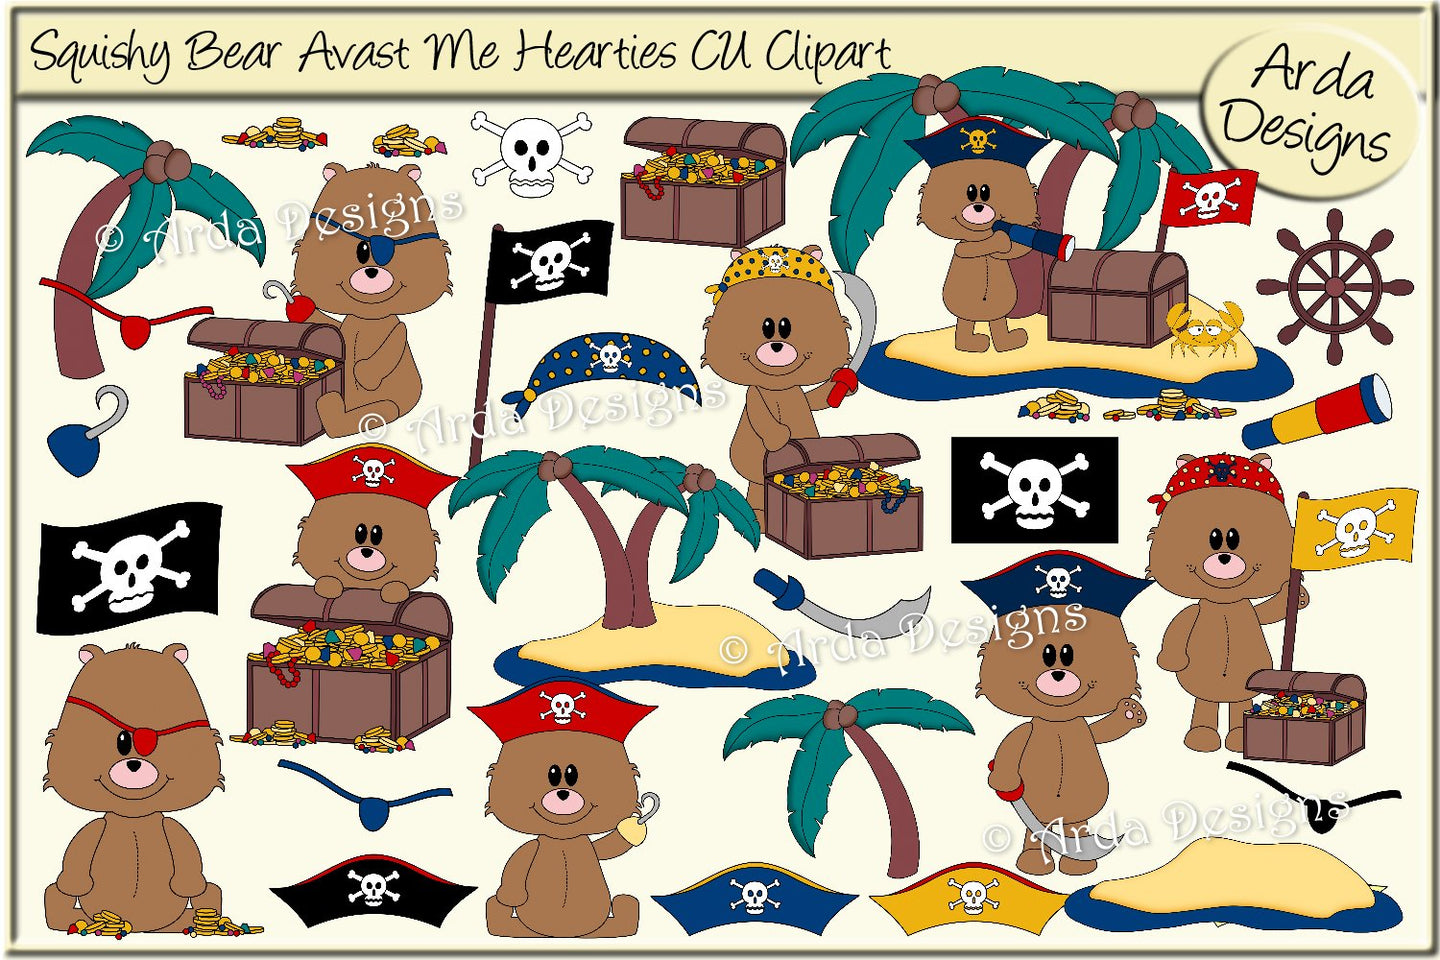 Squishy Bear Avast Me Hearties CU Clipart